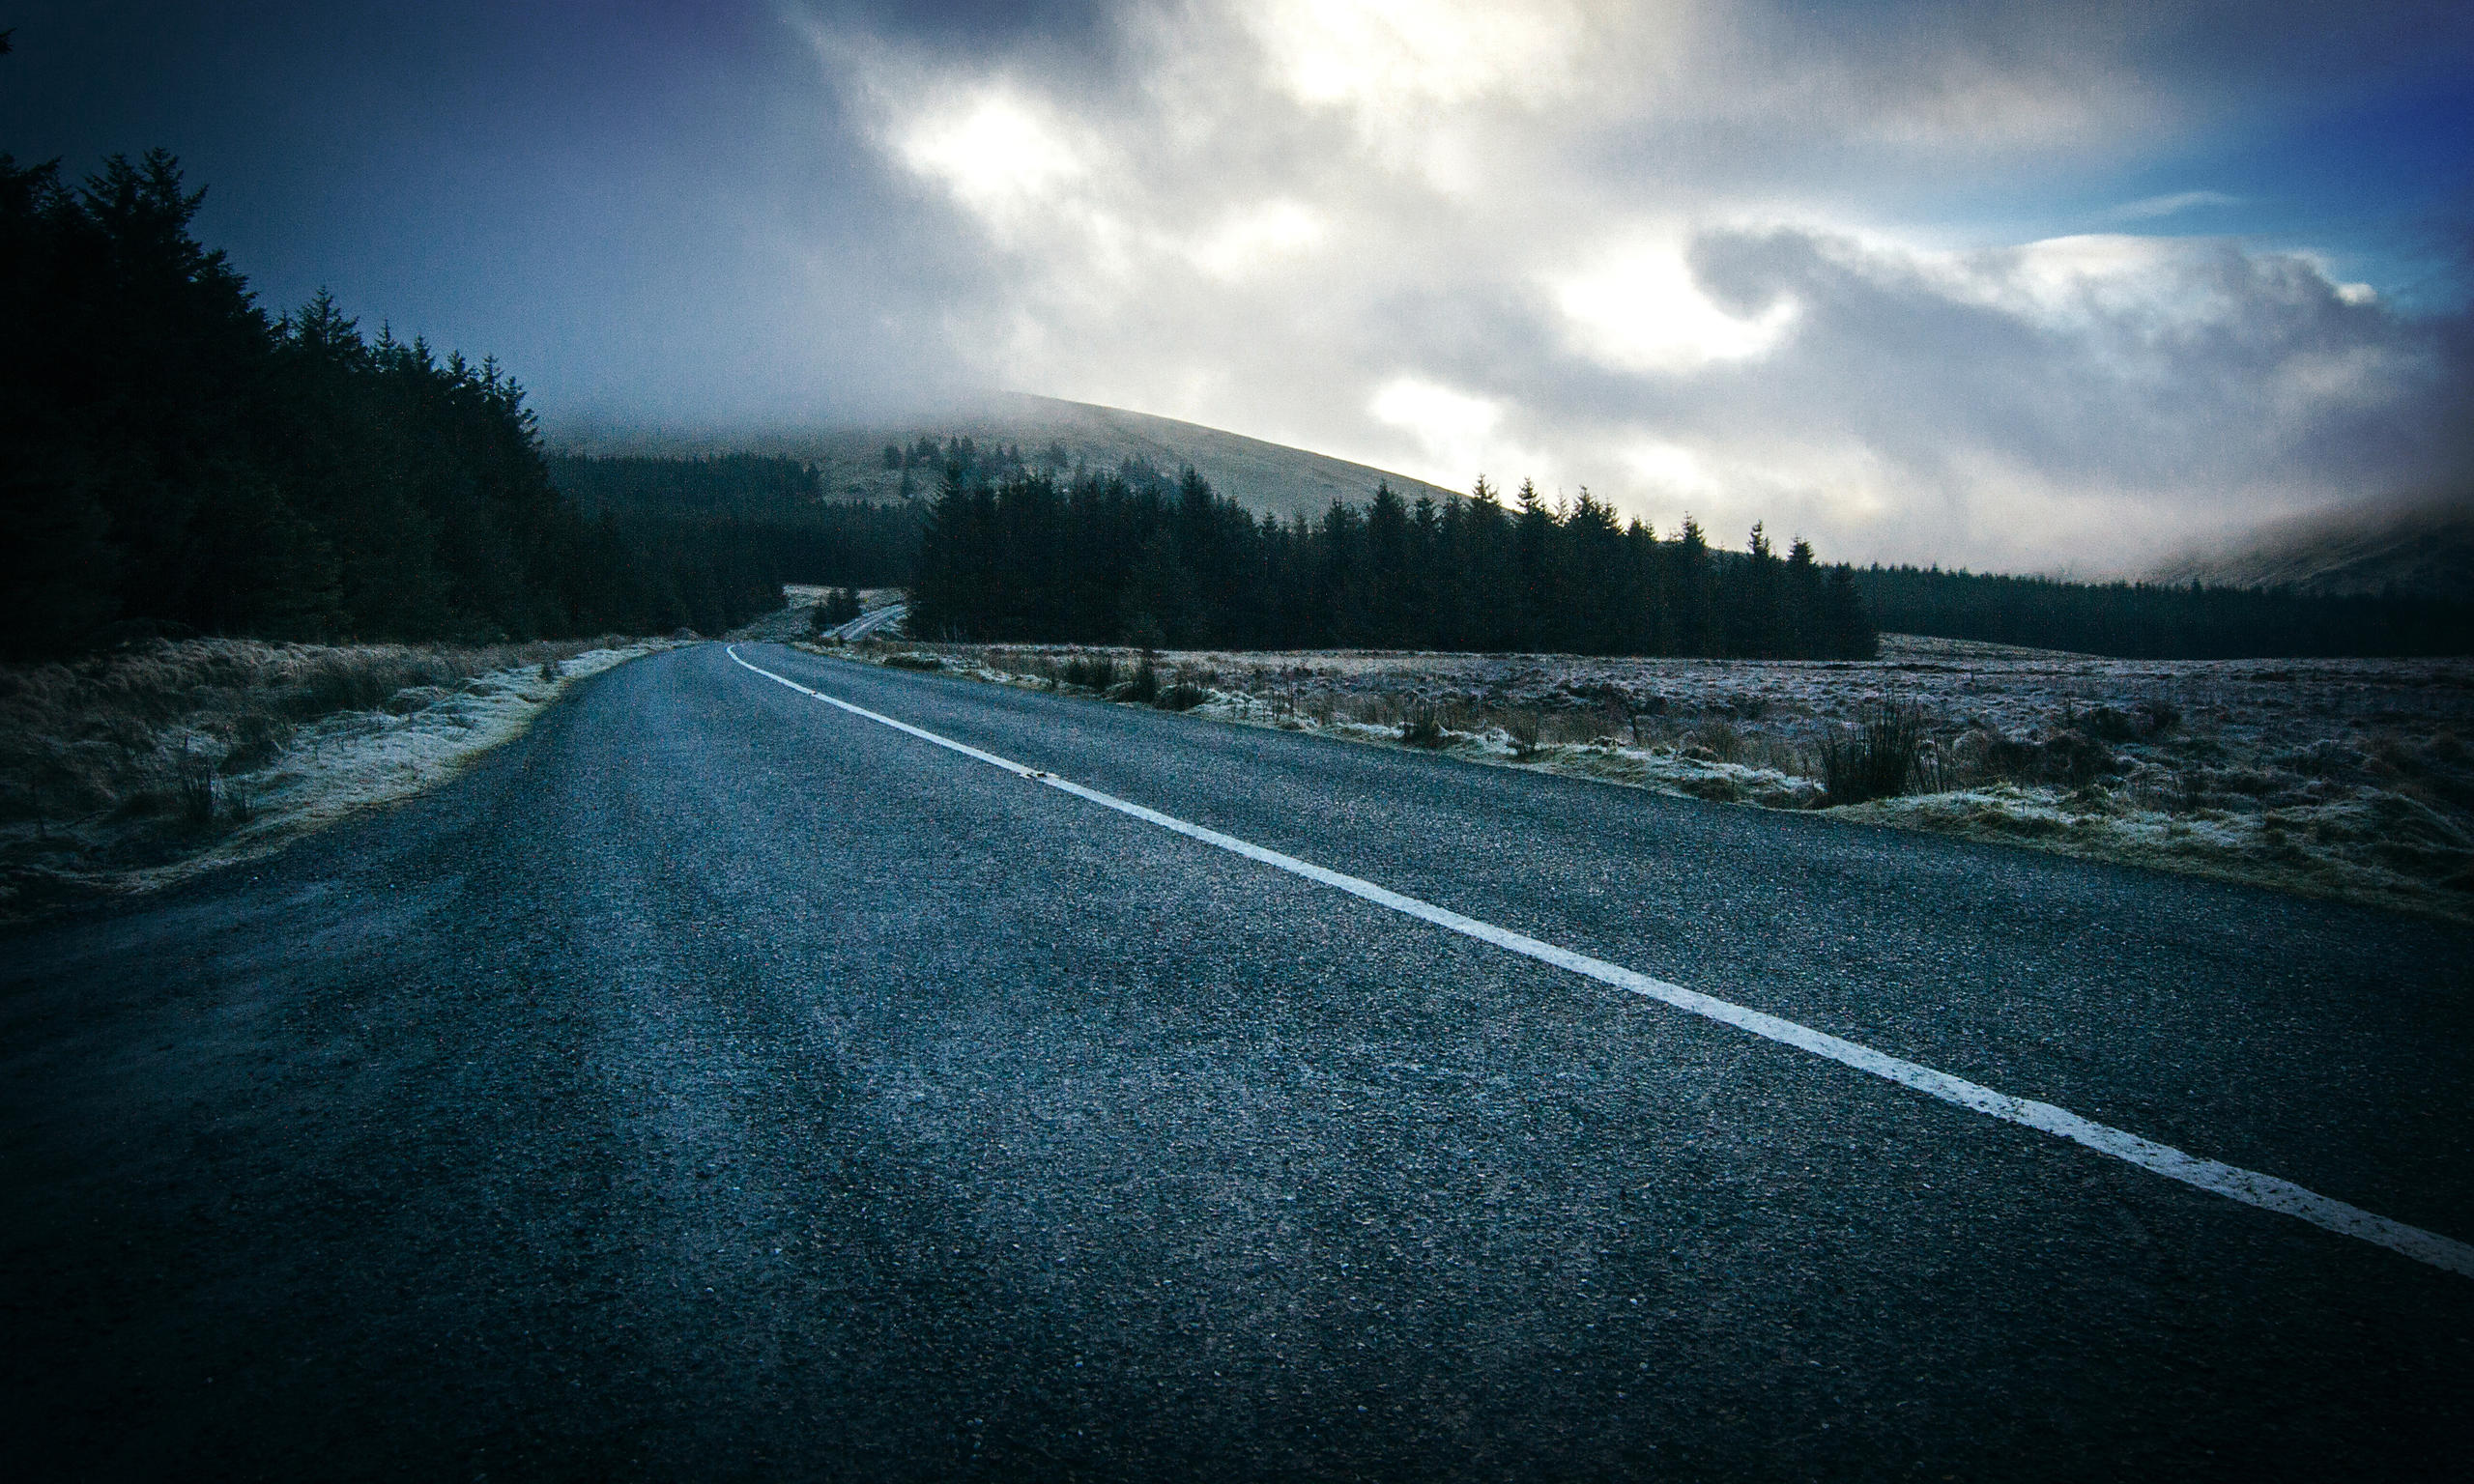 Wicklow_way_foggy_road_17022016